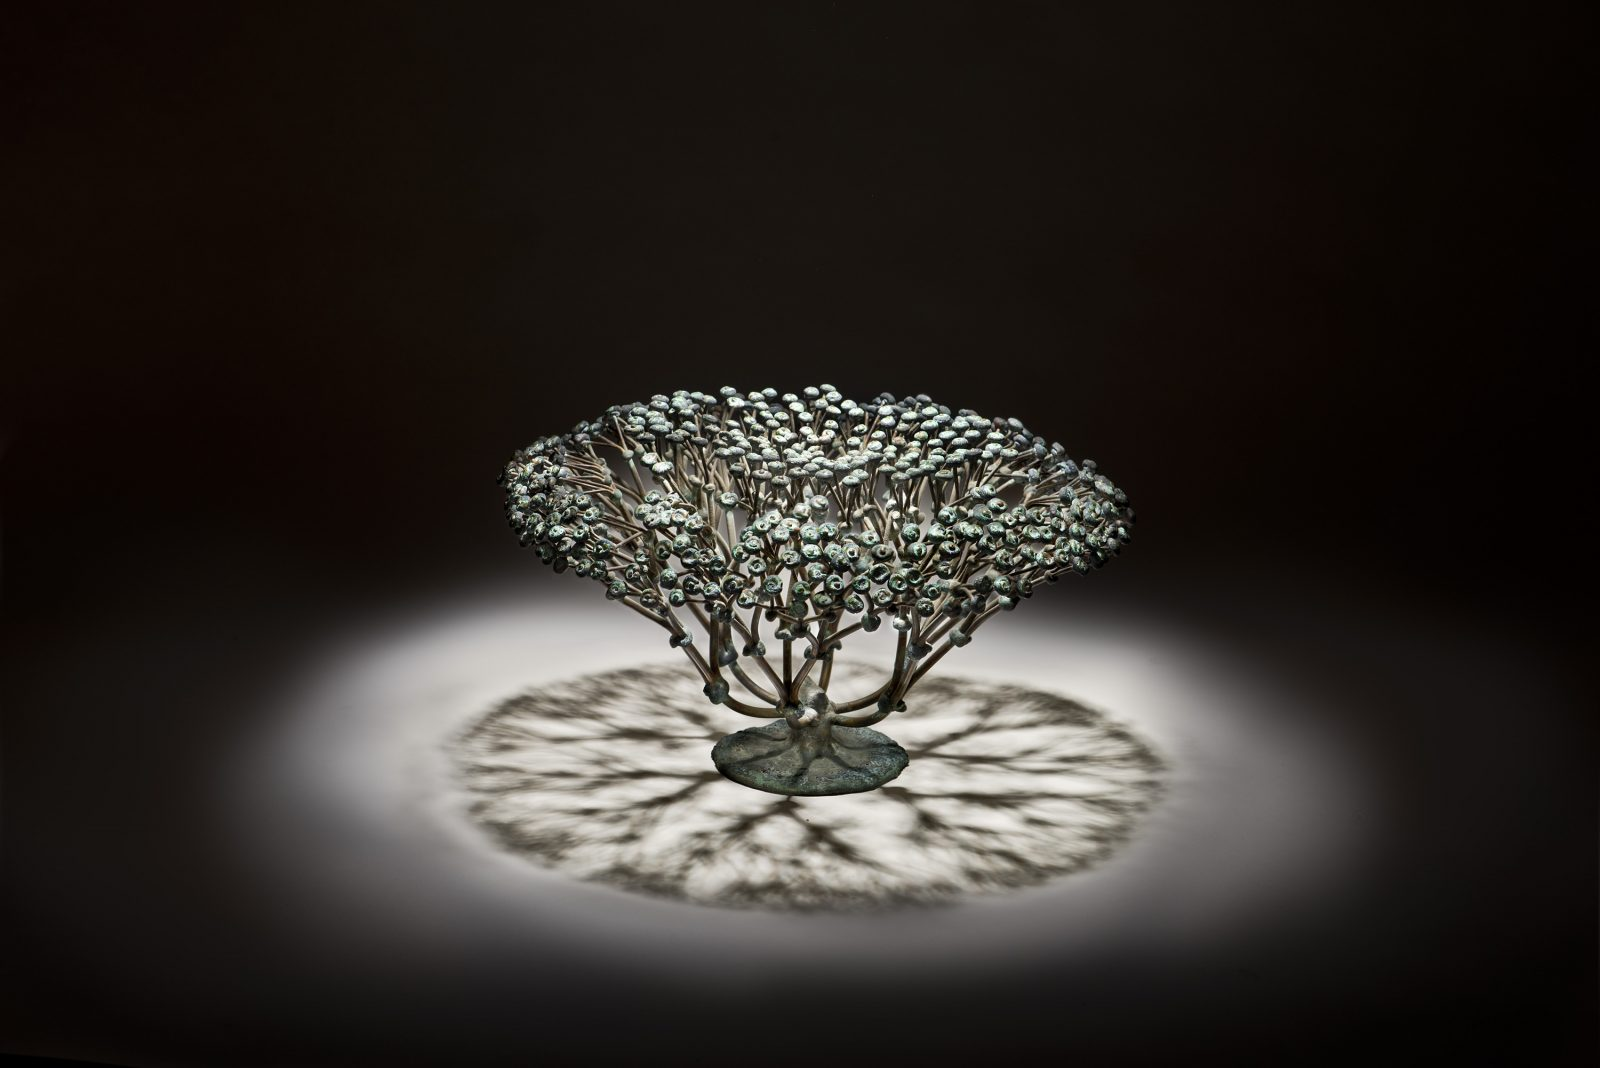 The present work is a small, elegant example of Harry Bertoia's bush-type pieces.